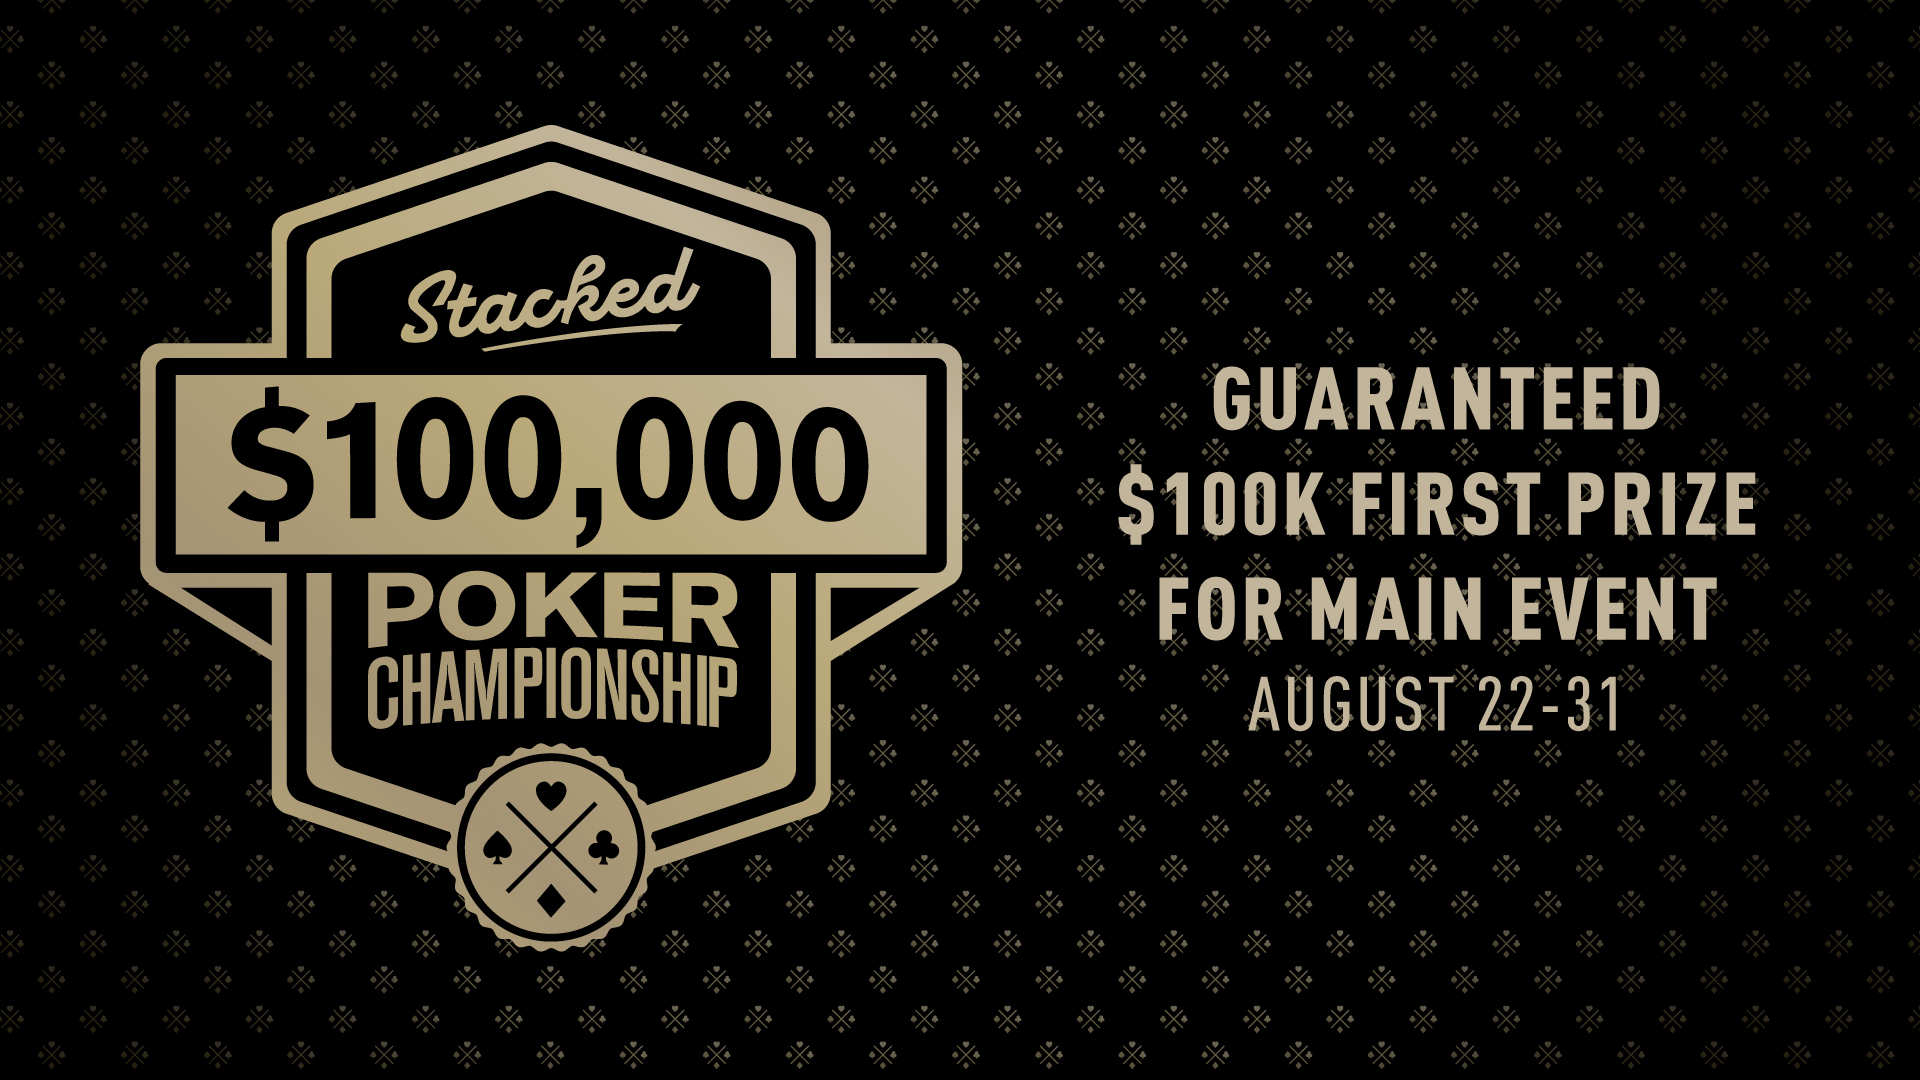 Stacked Poker Championship